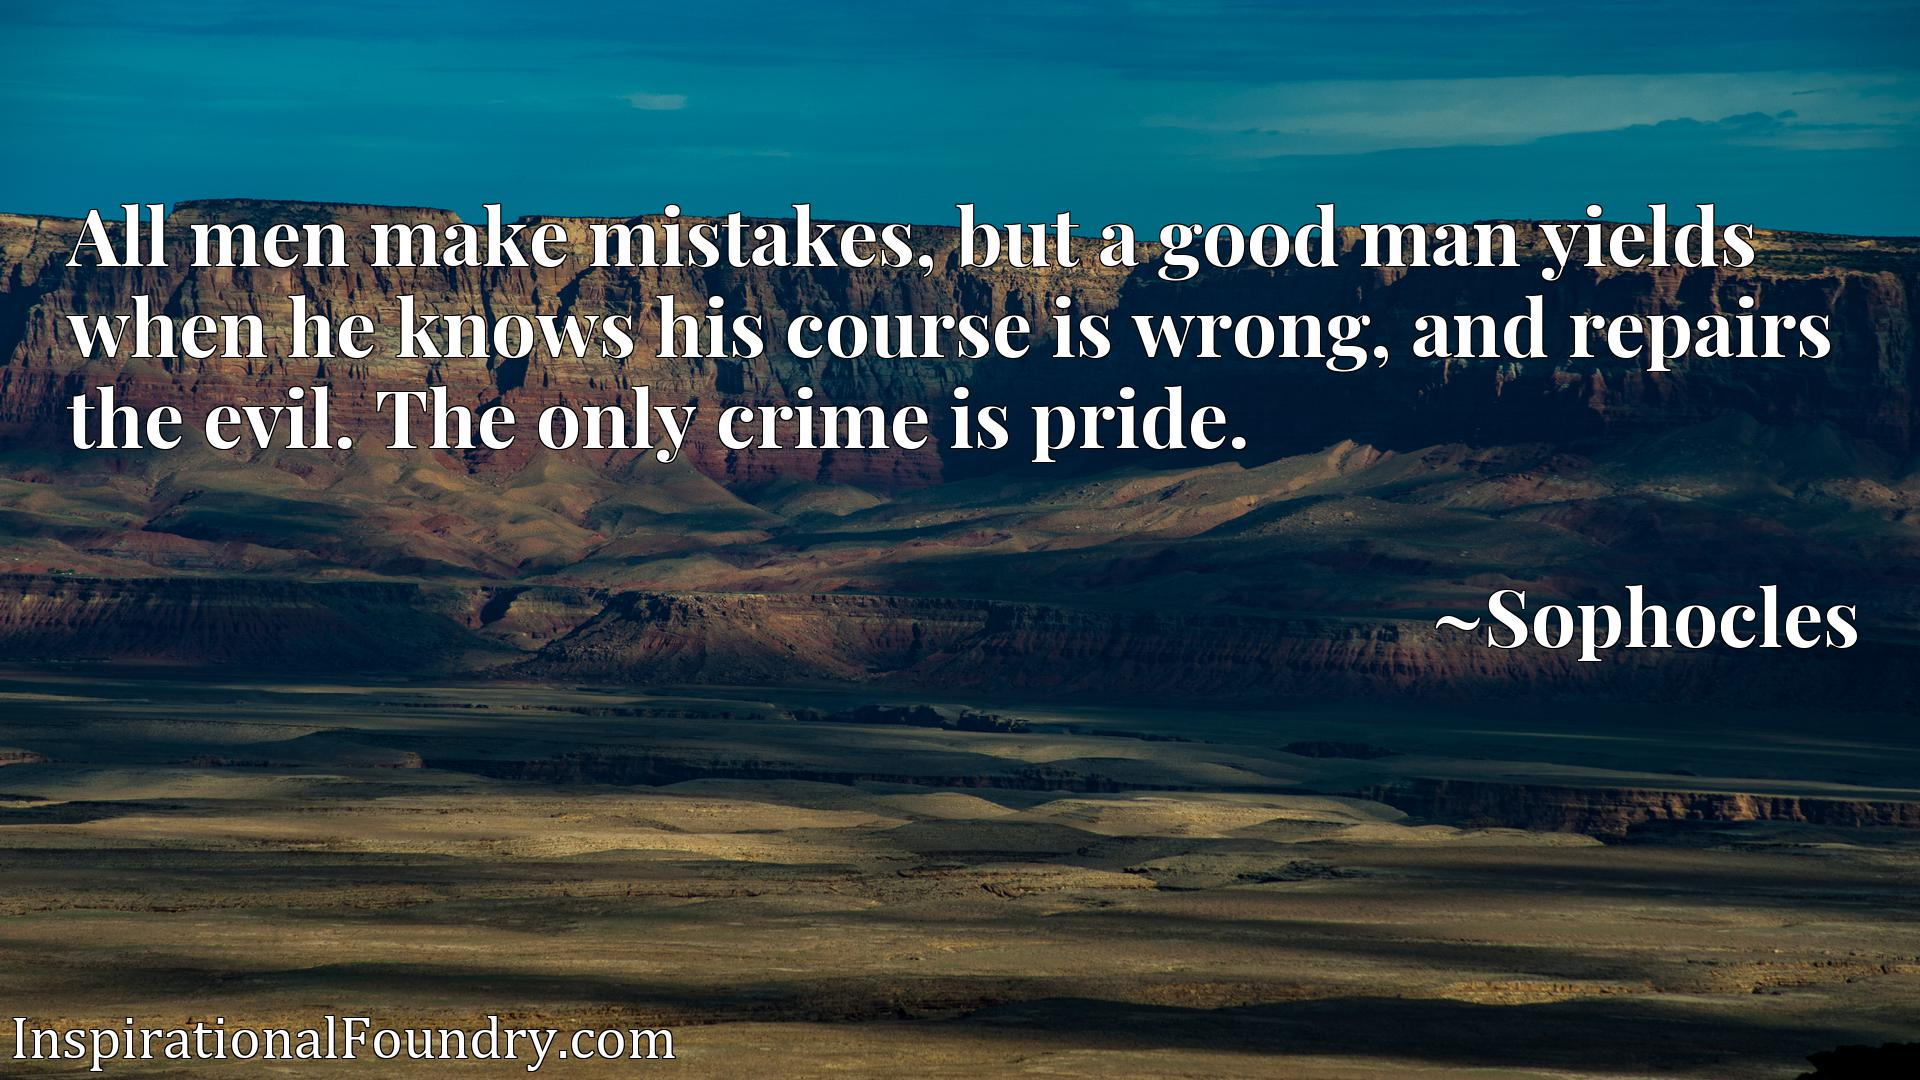 All men make mistakes, but a good man yields when he knows his course is wrong, and repairs the evil. The only crime is pride.